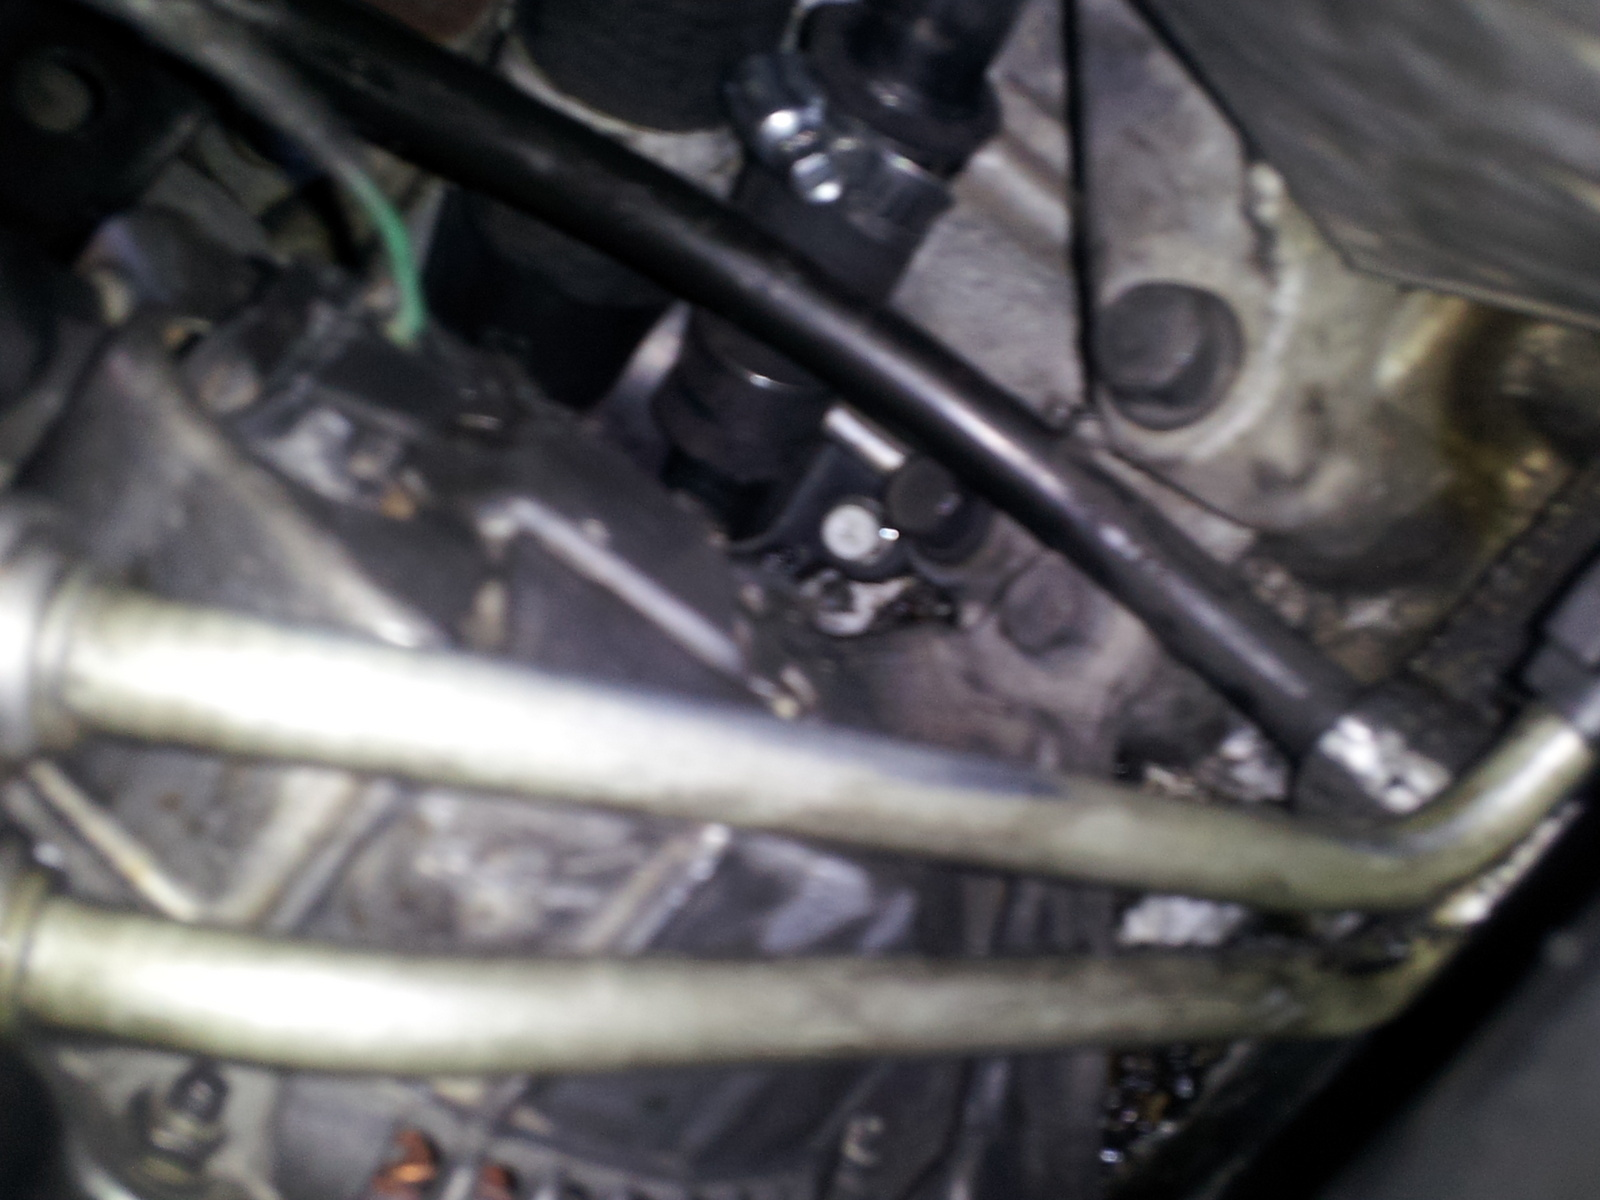 Dodge Charger 2 7 Engine Serpentine Belt Diagram Wiring Library 2011 Santa Fe 27 Have A Little Hole That Keeps Leaking Coolant From The Motor Its